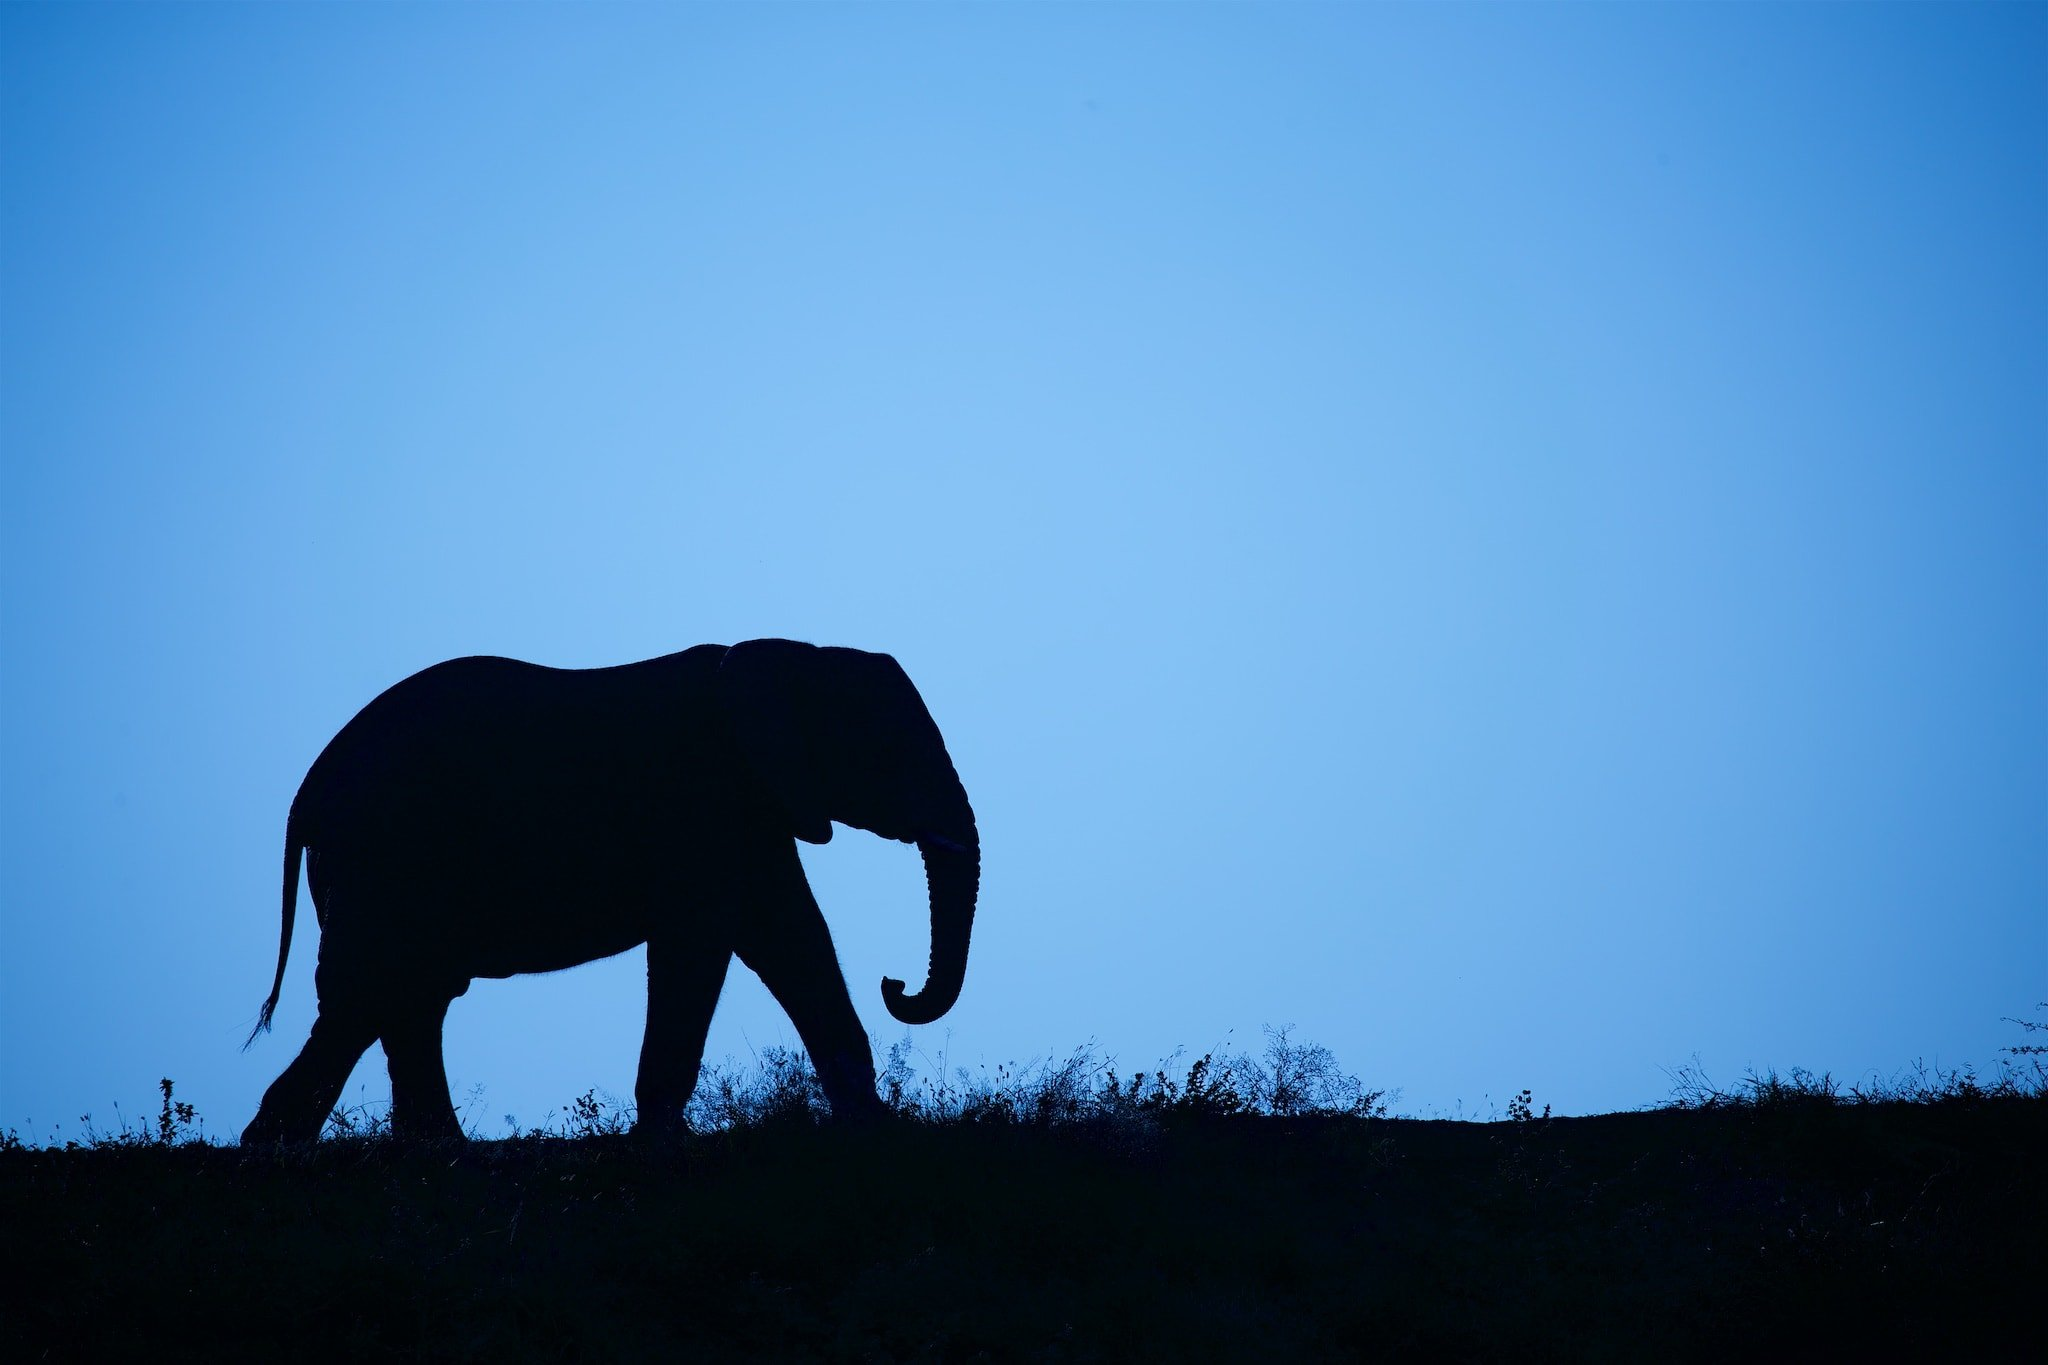 An elephant silhouetted against the skyline image captured within Zimanga Game Reserve in Kwazula Natal South Africa